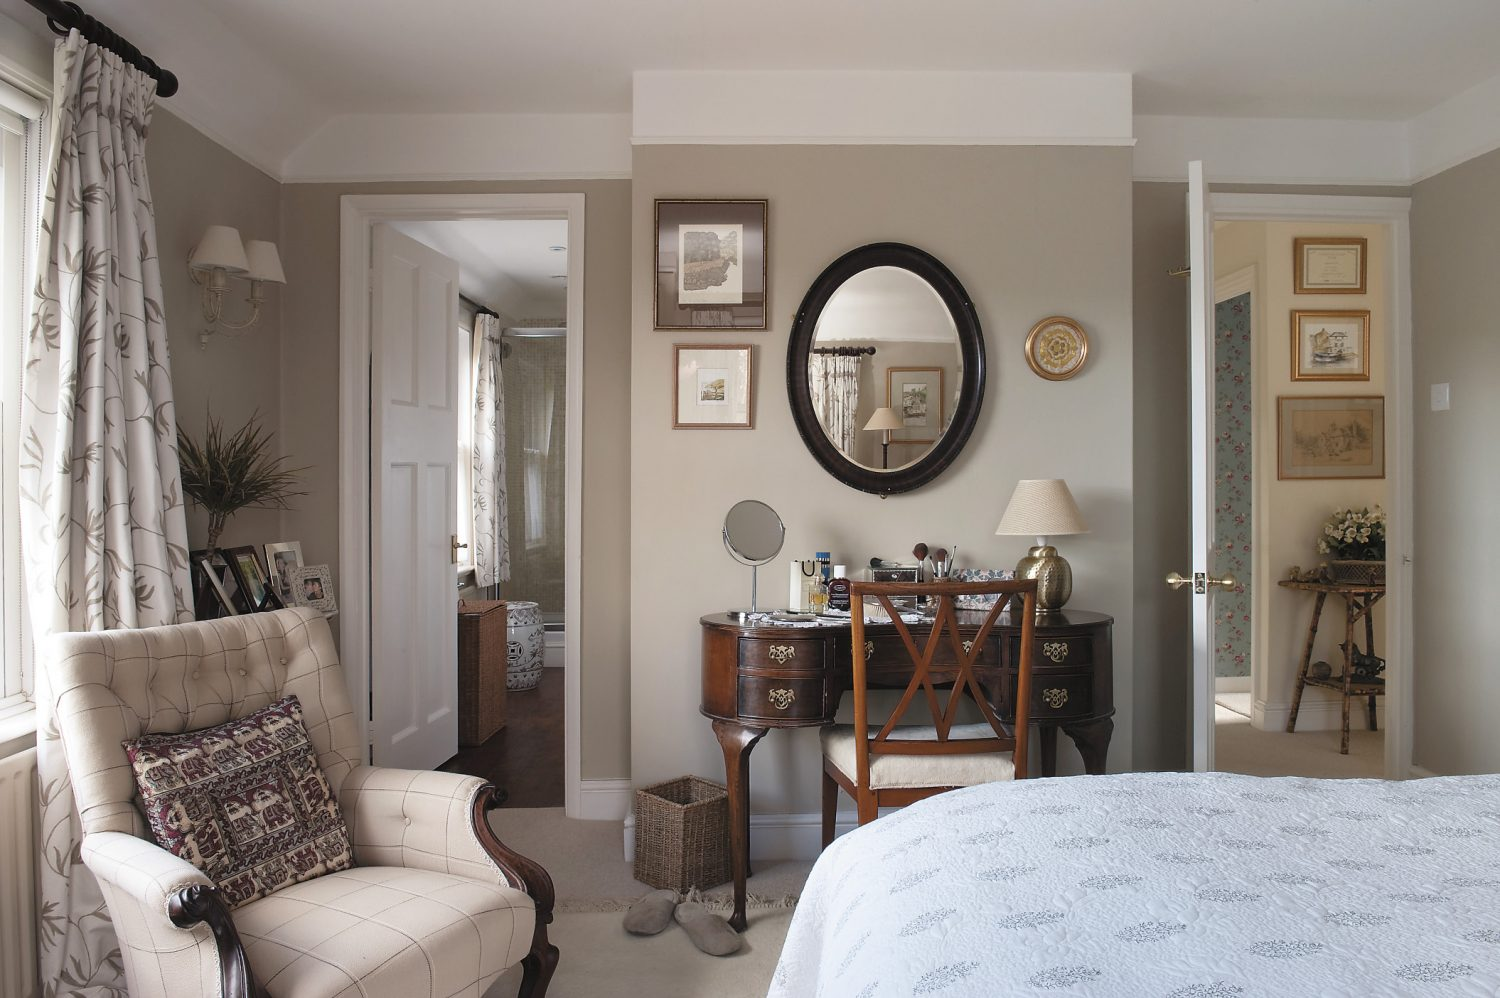 the main bedroom leads into an en suite bathroom below left the guest bathroom is home to a collection of mirrors